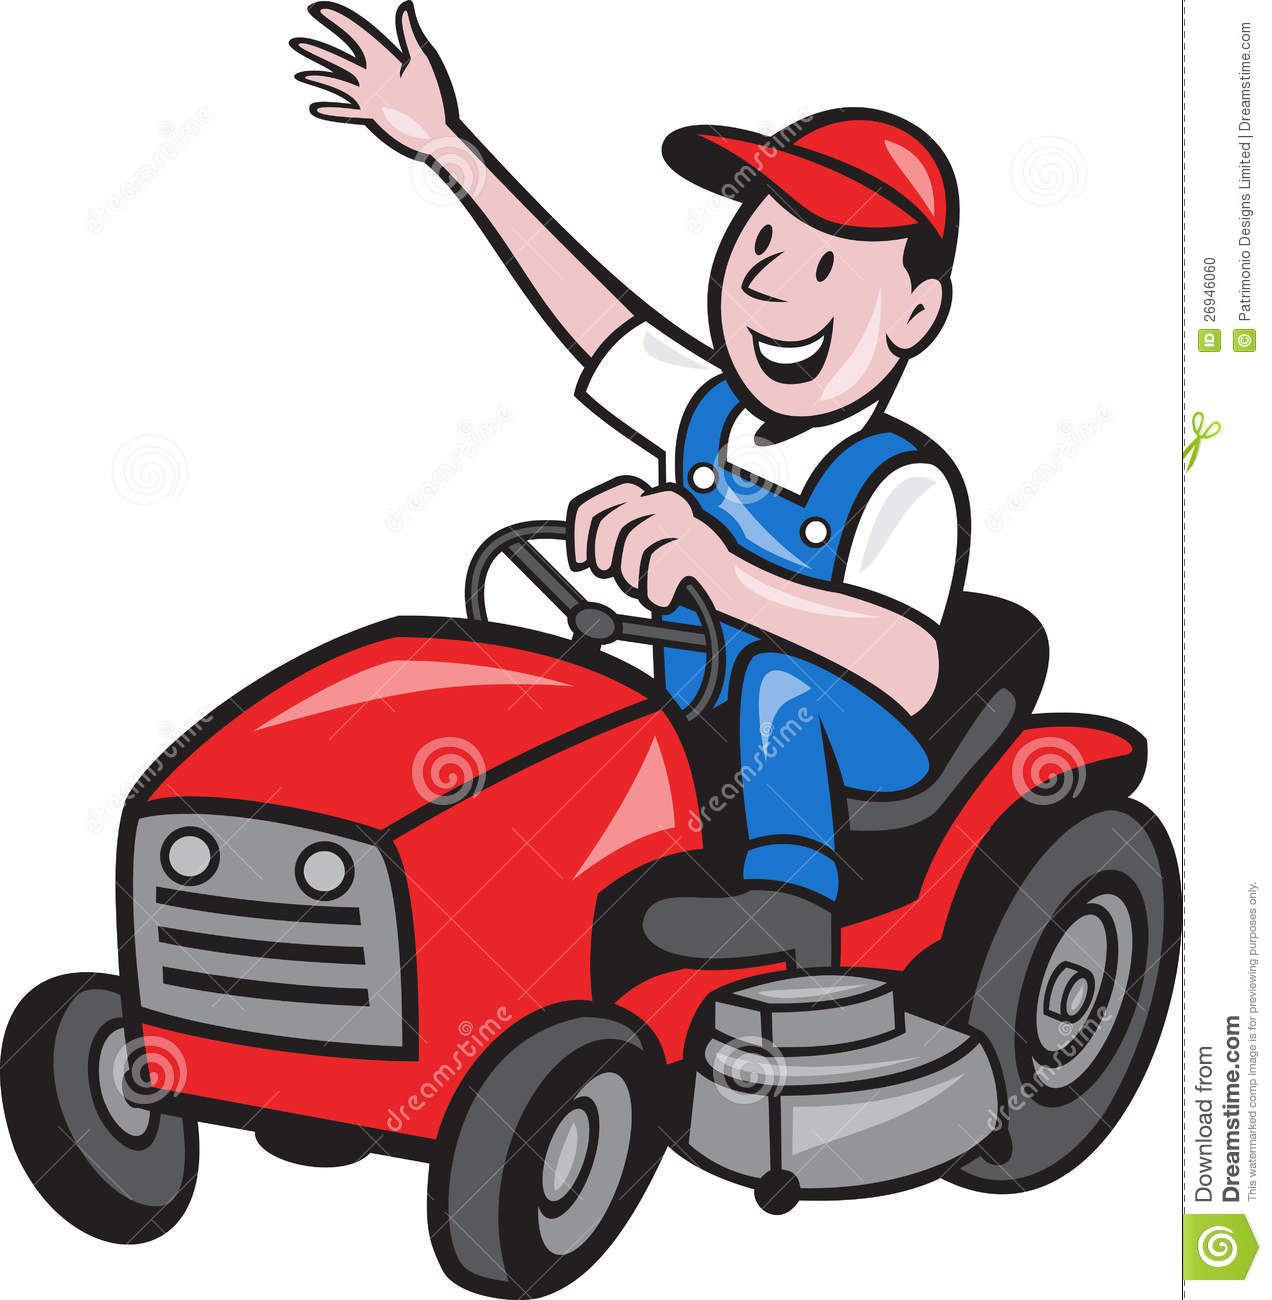 Riding Lawn Mower mower stock illustrations, vectors, & clipart ...